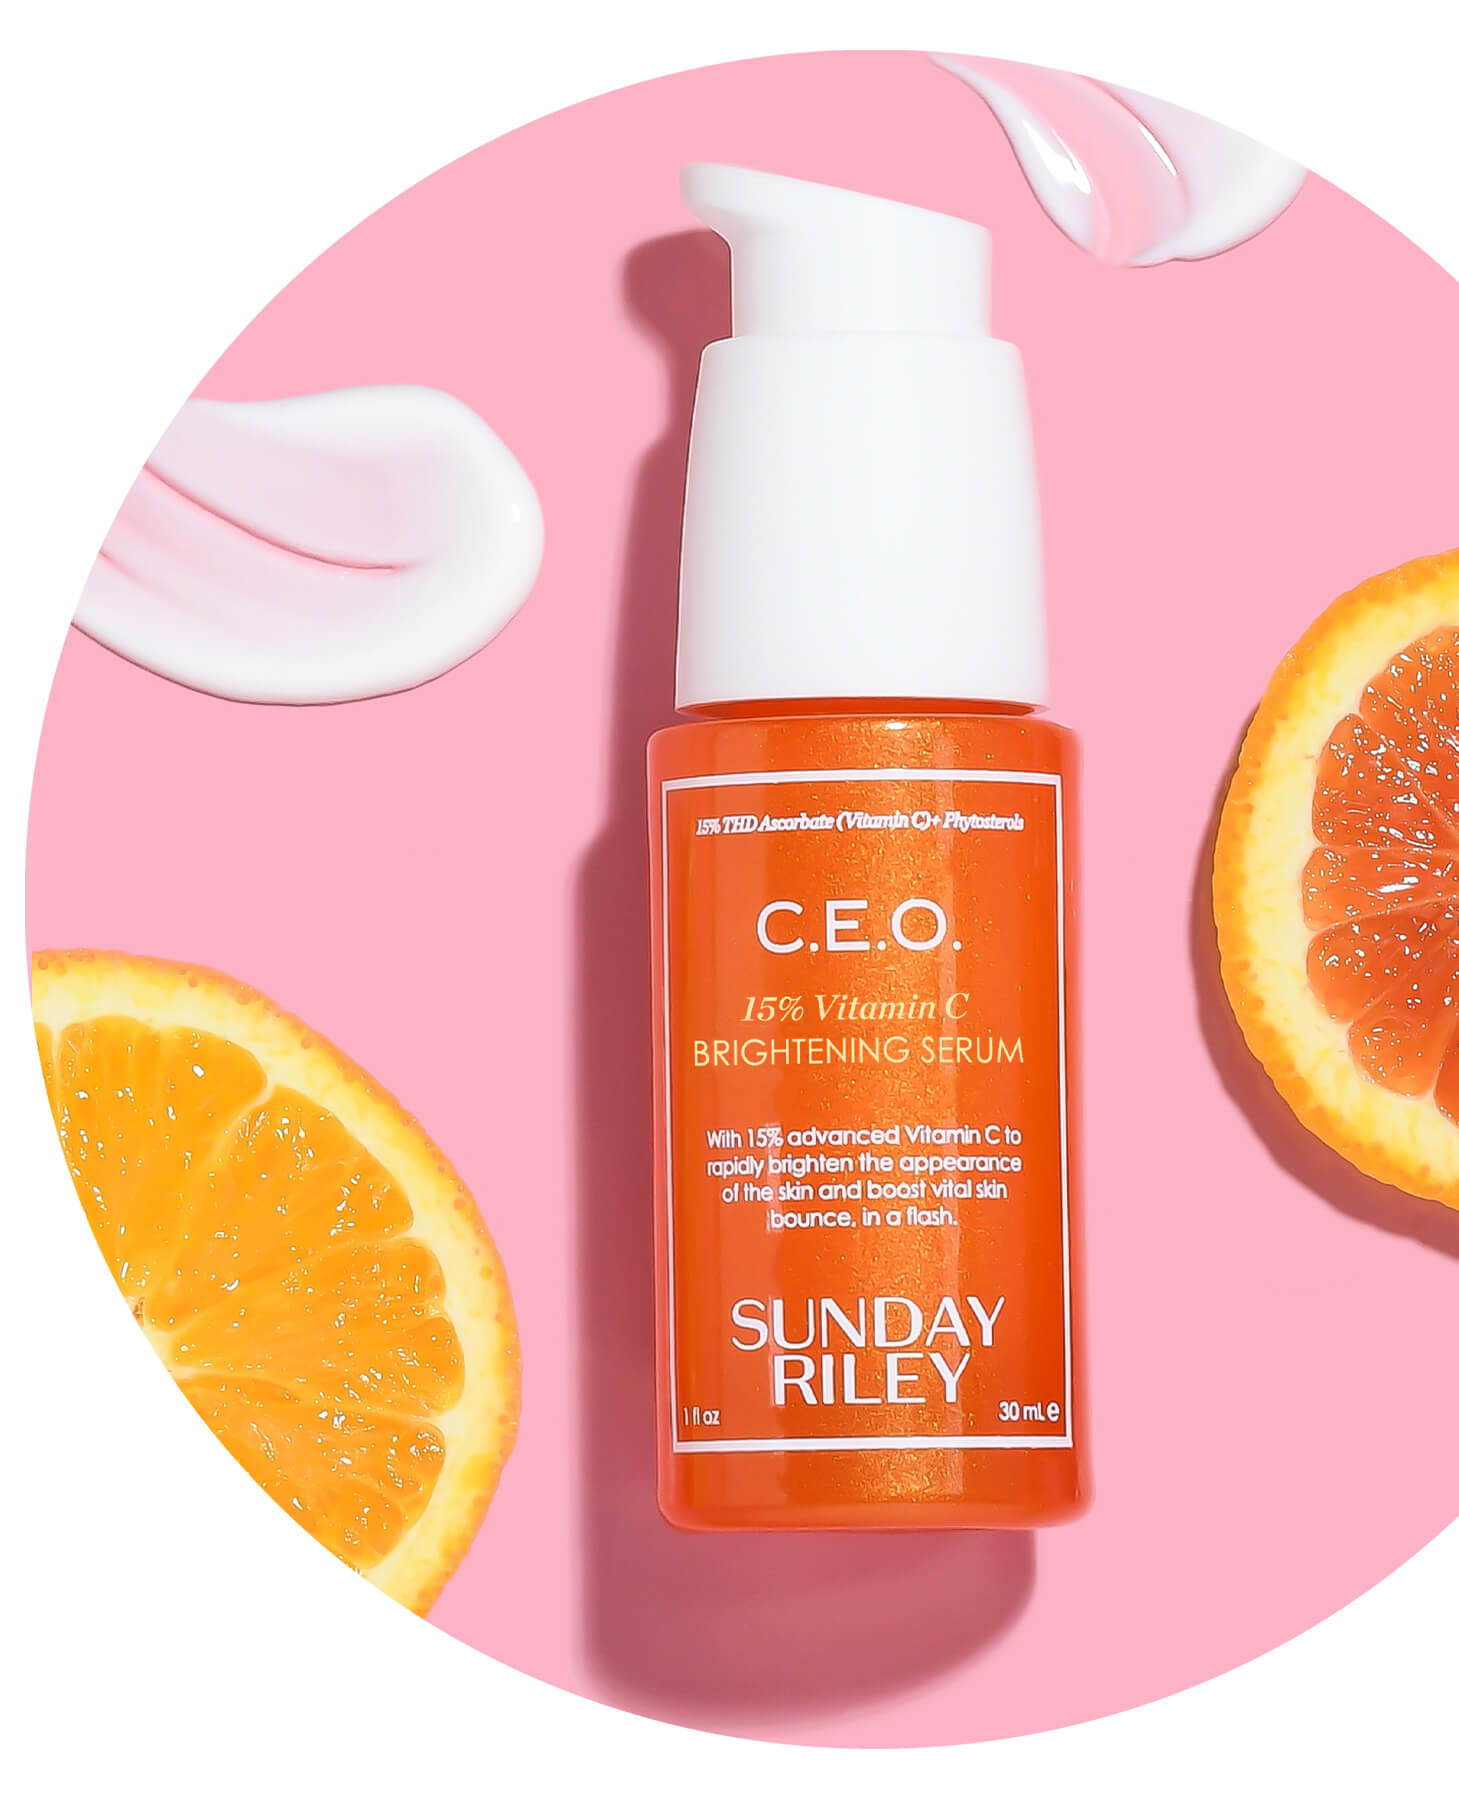 c.e.o. 15% vitamin c brightening serum bottle with orange slices and goops on pink background